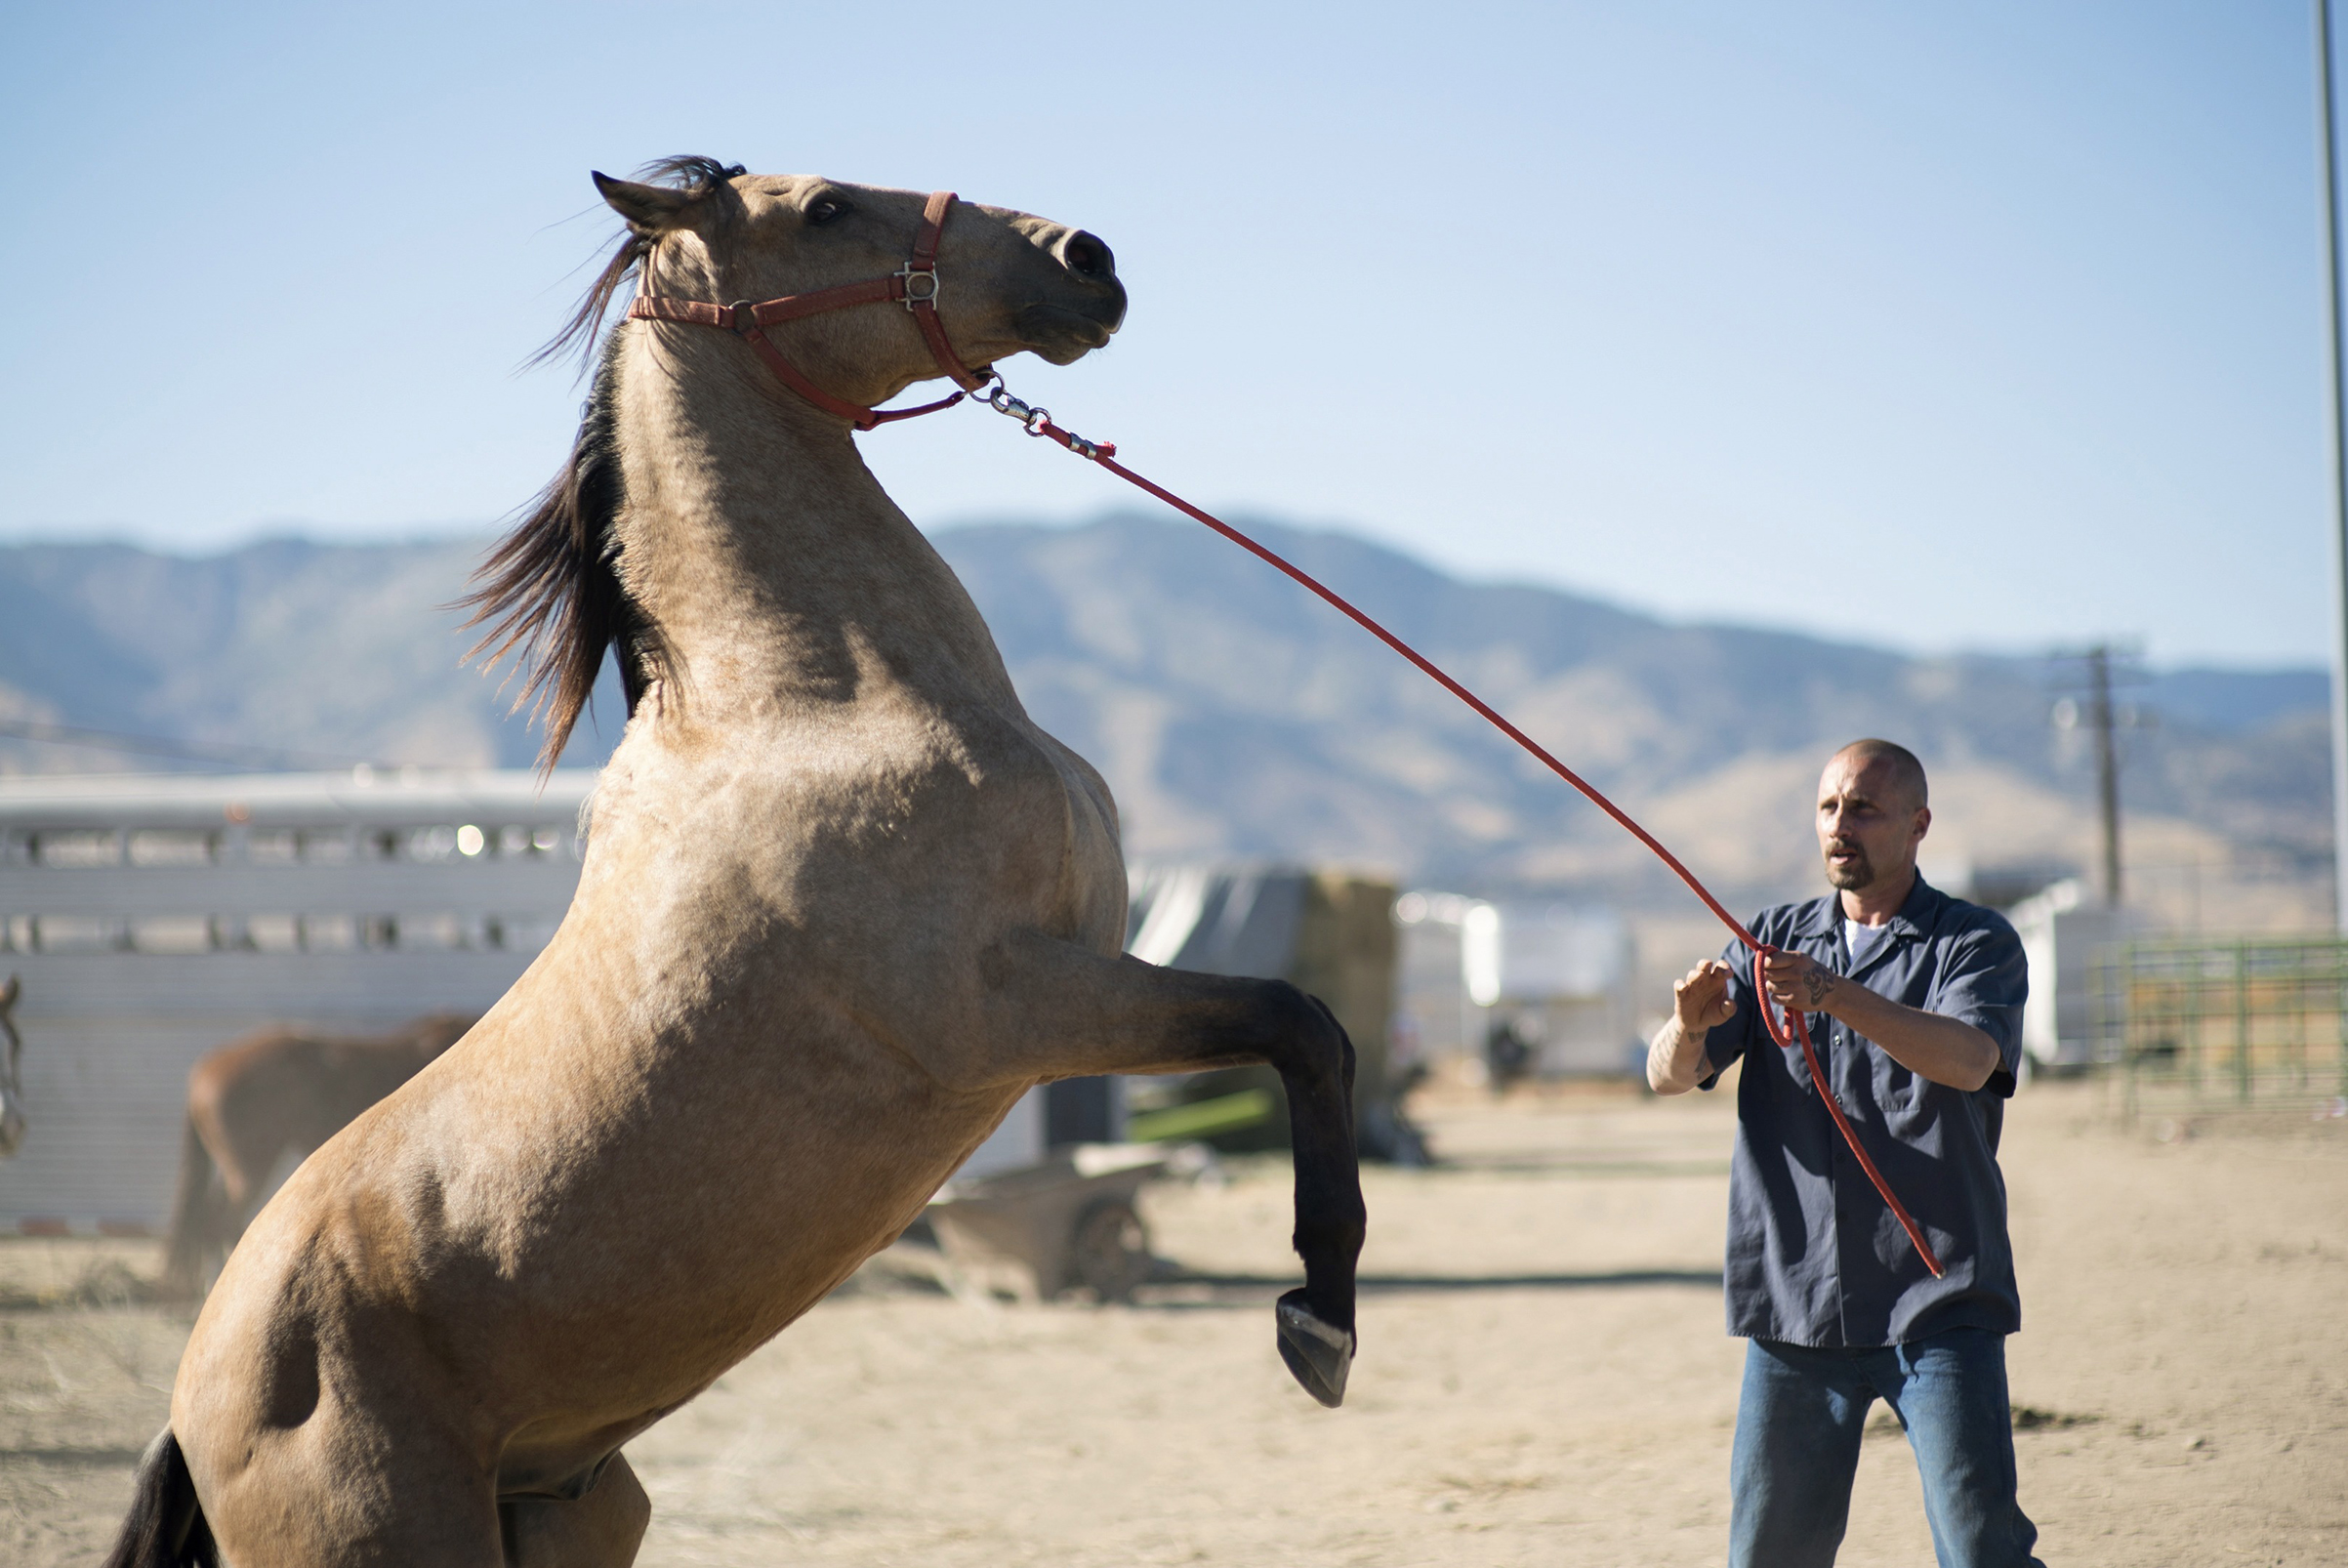 A Wild Horse And An Inmate Tame Each Other In The Mustang Time